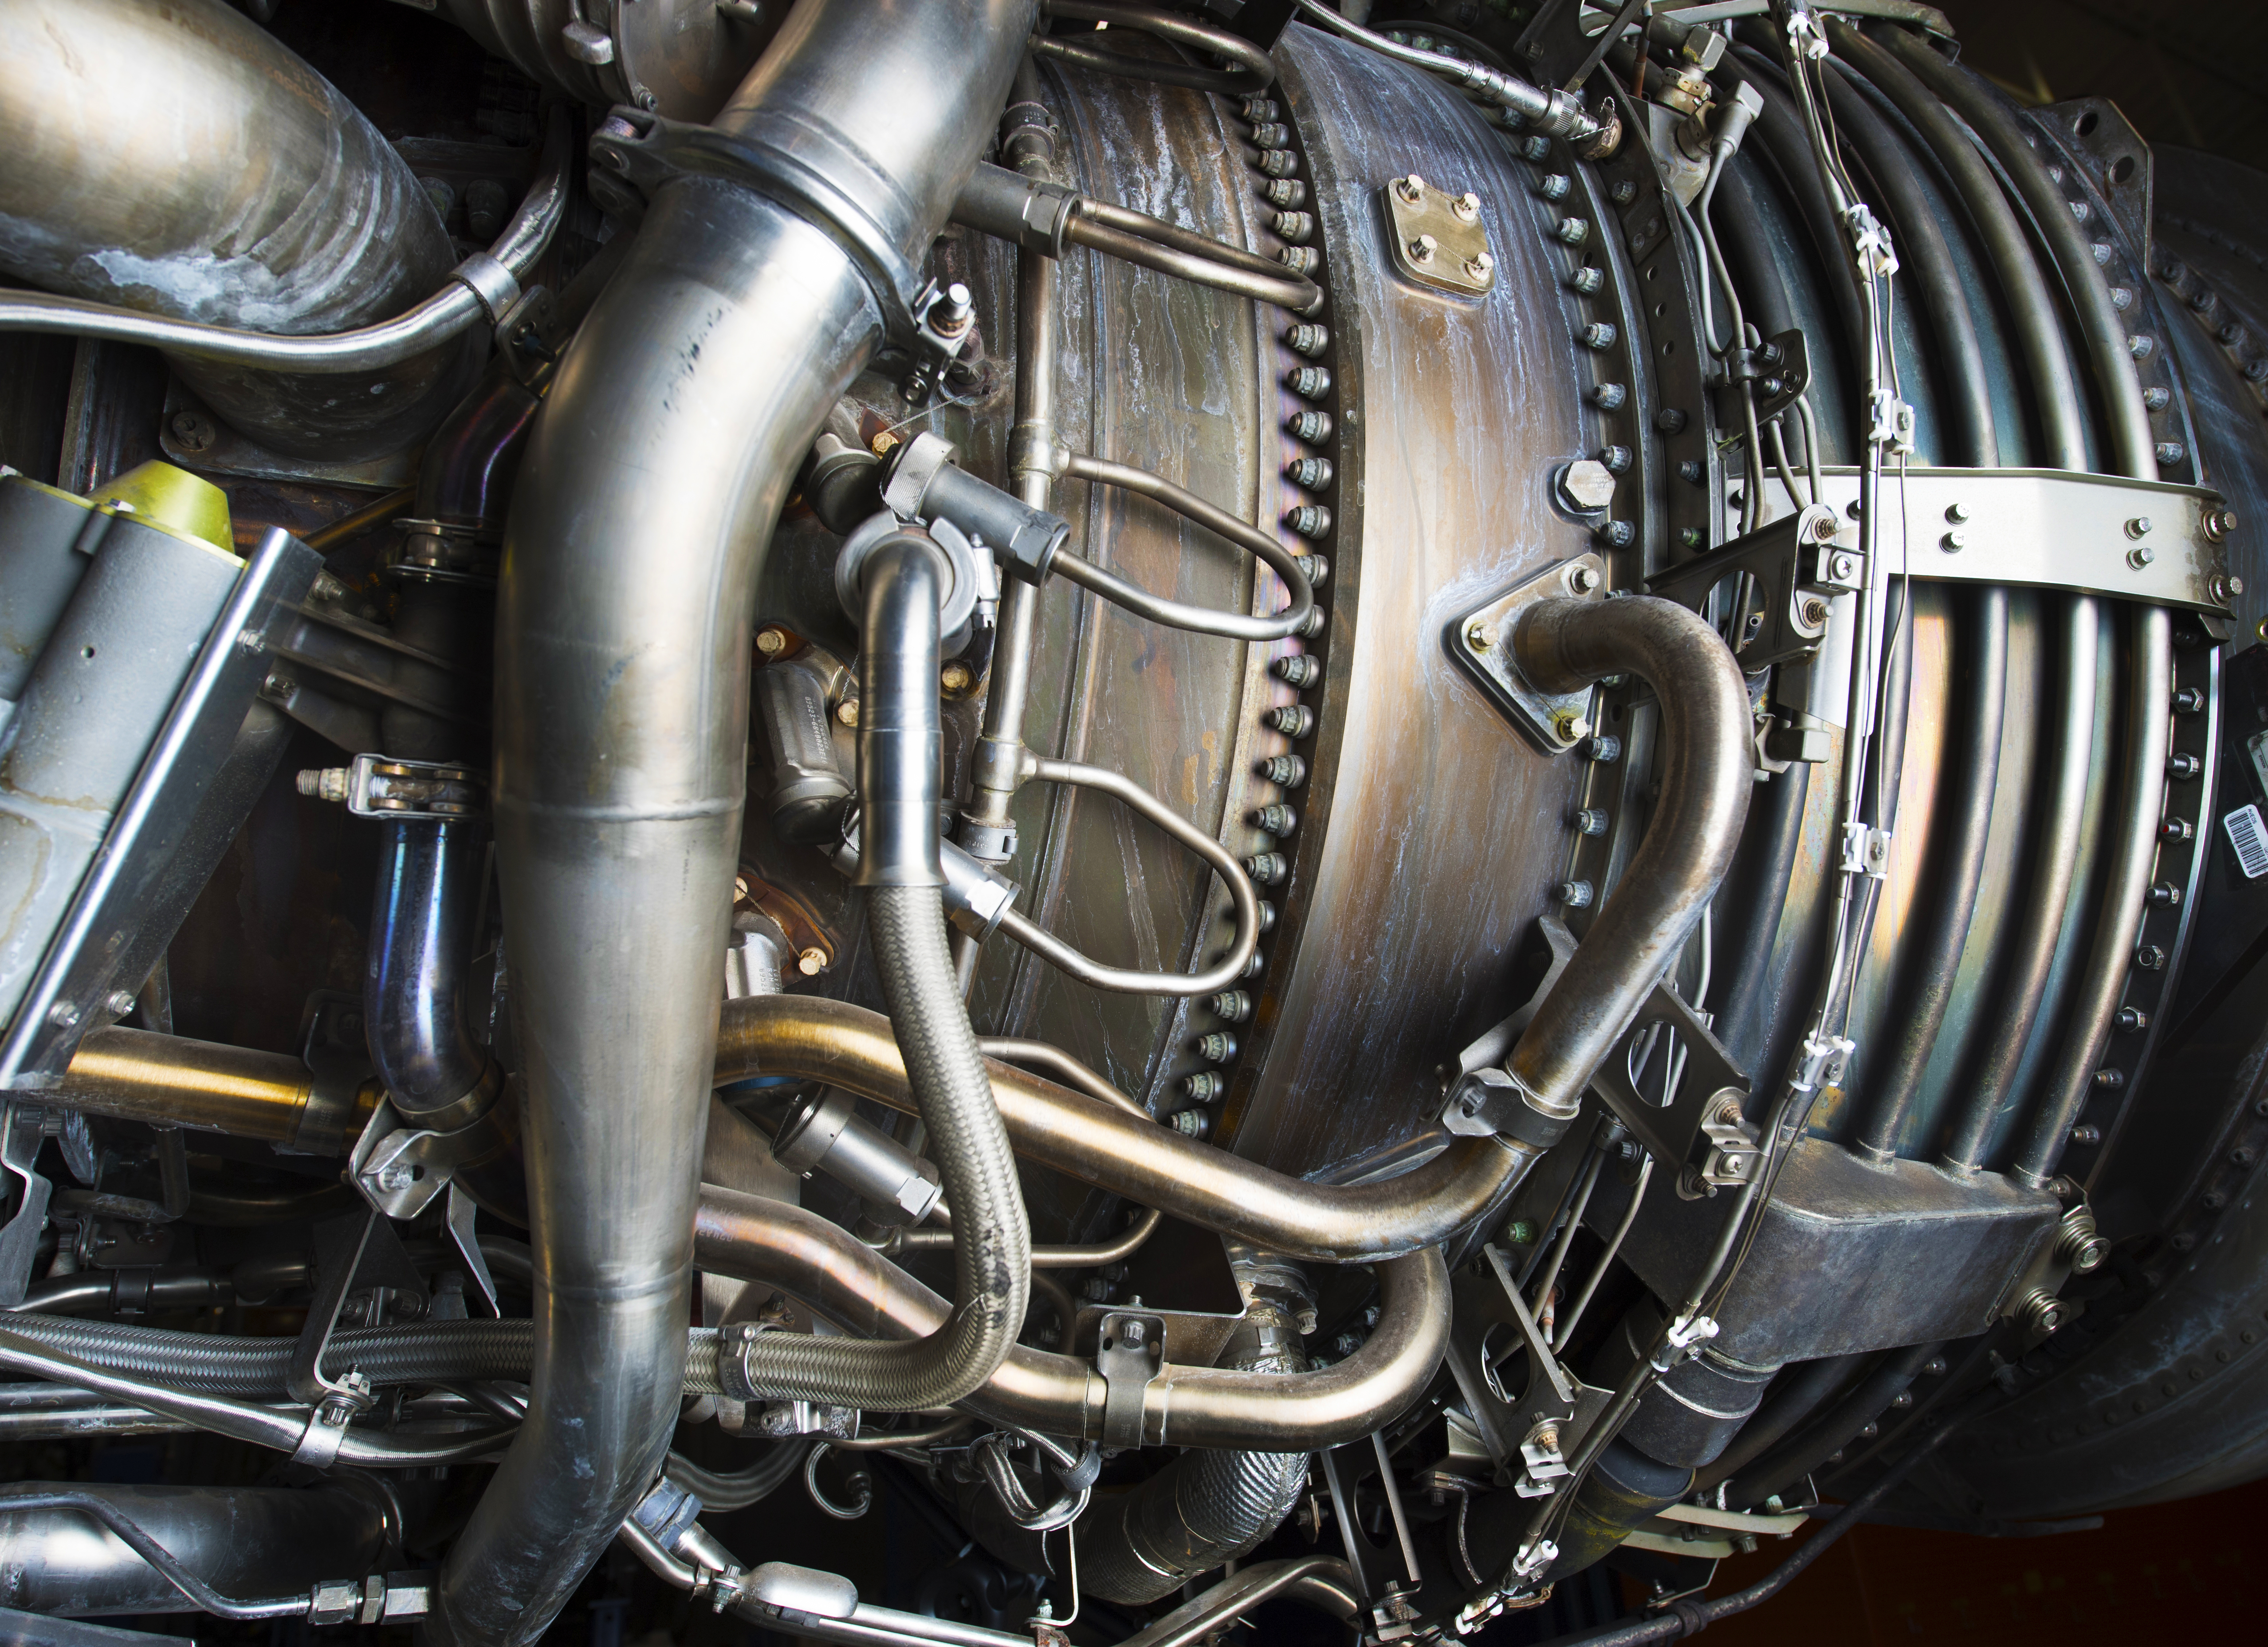 """Fortress Transportation and Infrastructure Investors LLC (NYSE: FTAI) and Lockheed Martin (NYSE: LMT) Commercial Engine Solutions (""""LMCES"""") announce an agreement to establish The Module Factory™, a dedicated commercial engine maintenance center focused on modular repair and refurbishment of CFM56-7B and CFM56-5B engines"""